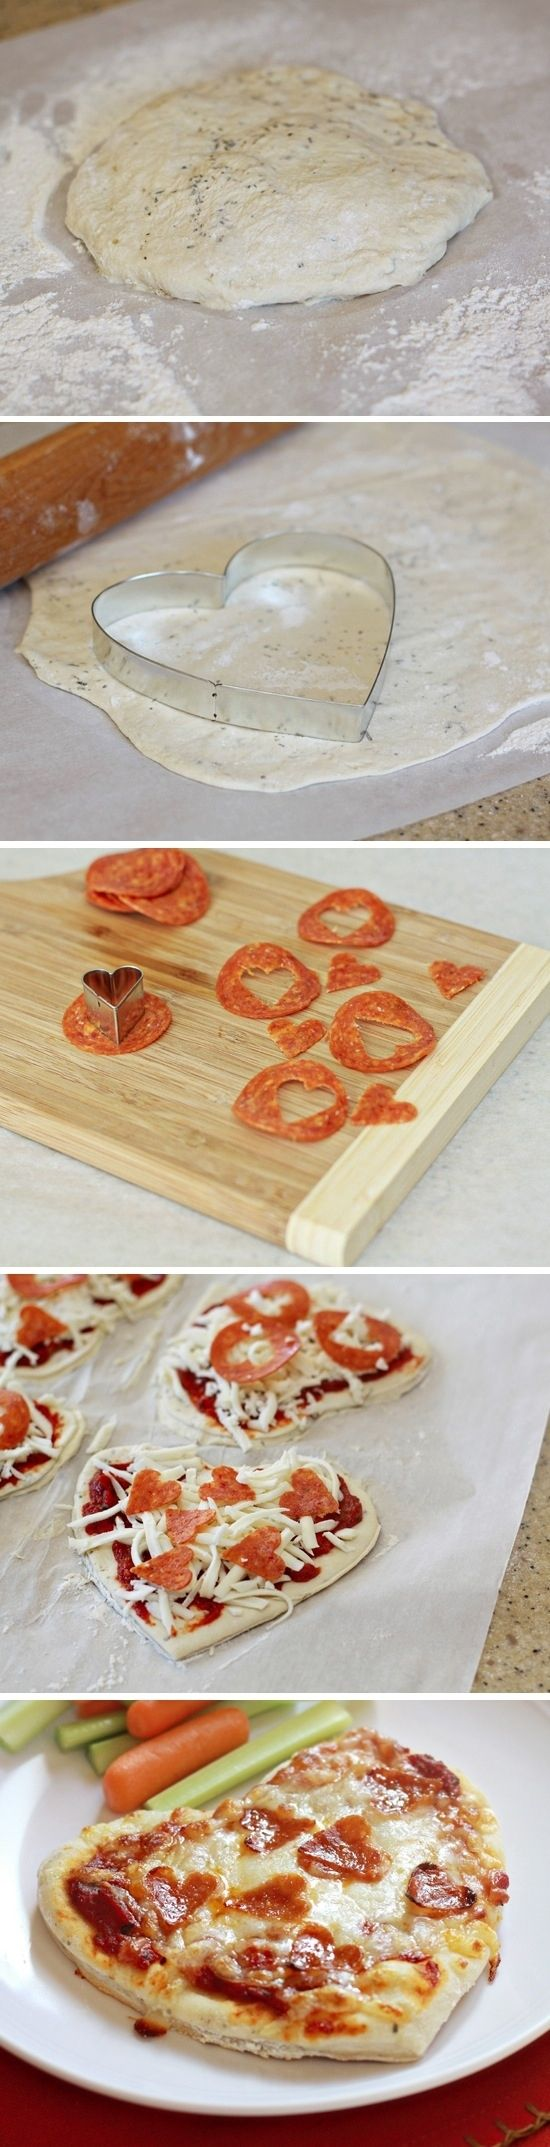 Heart-Shaped Mini Pizzas with Heart-Shaped Pepperonis | 29 Fun Food Crafts To Make For Someone You Love